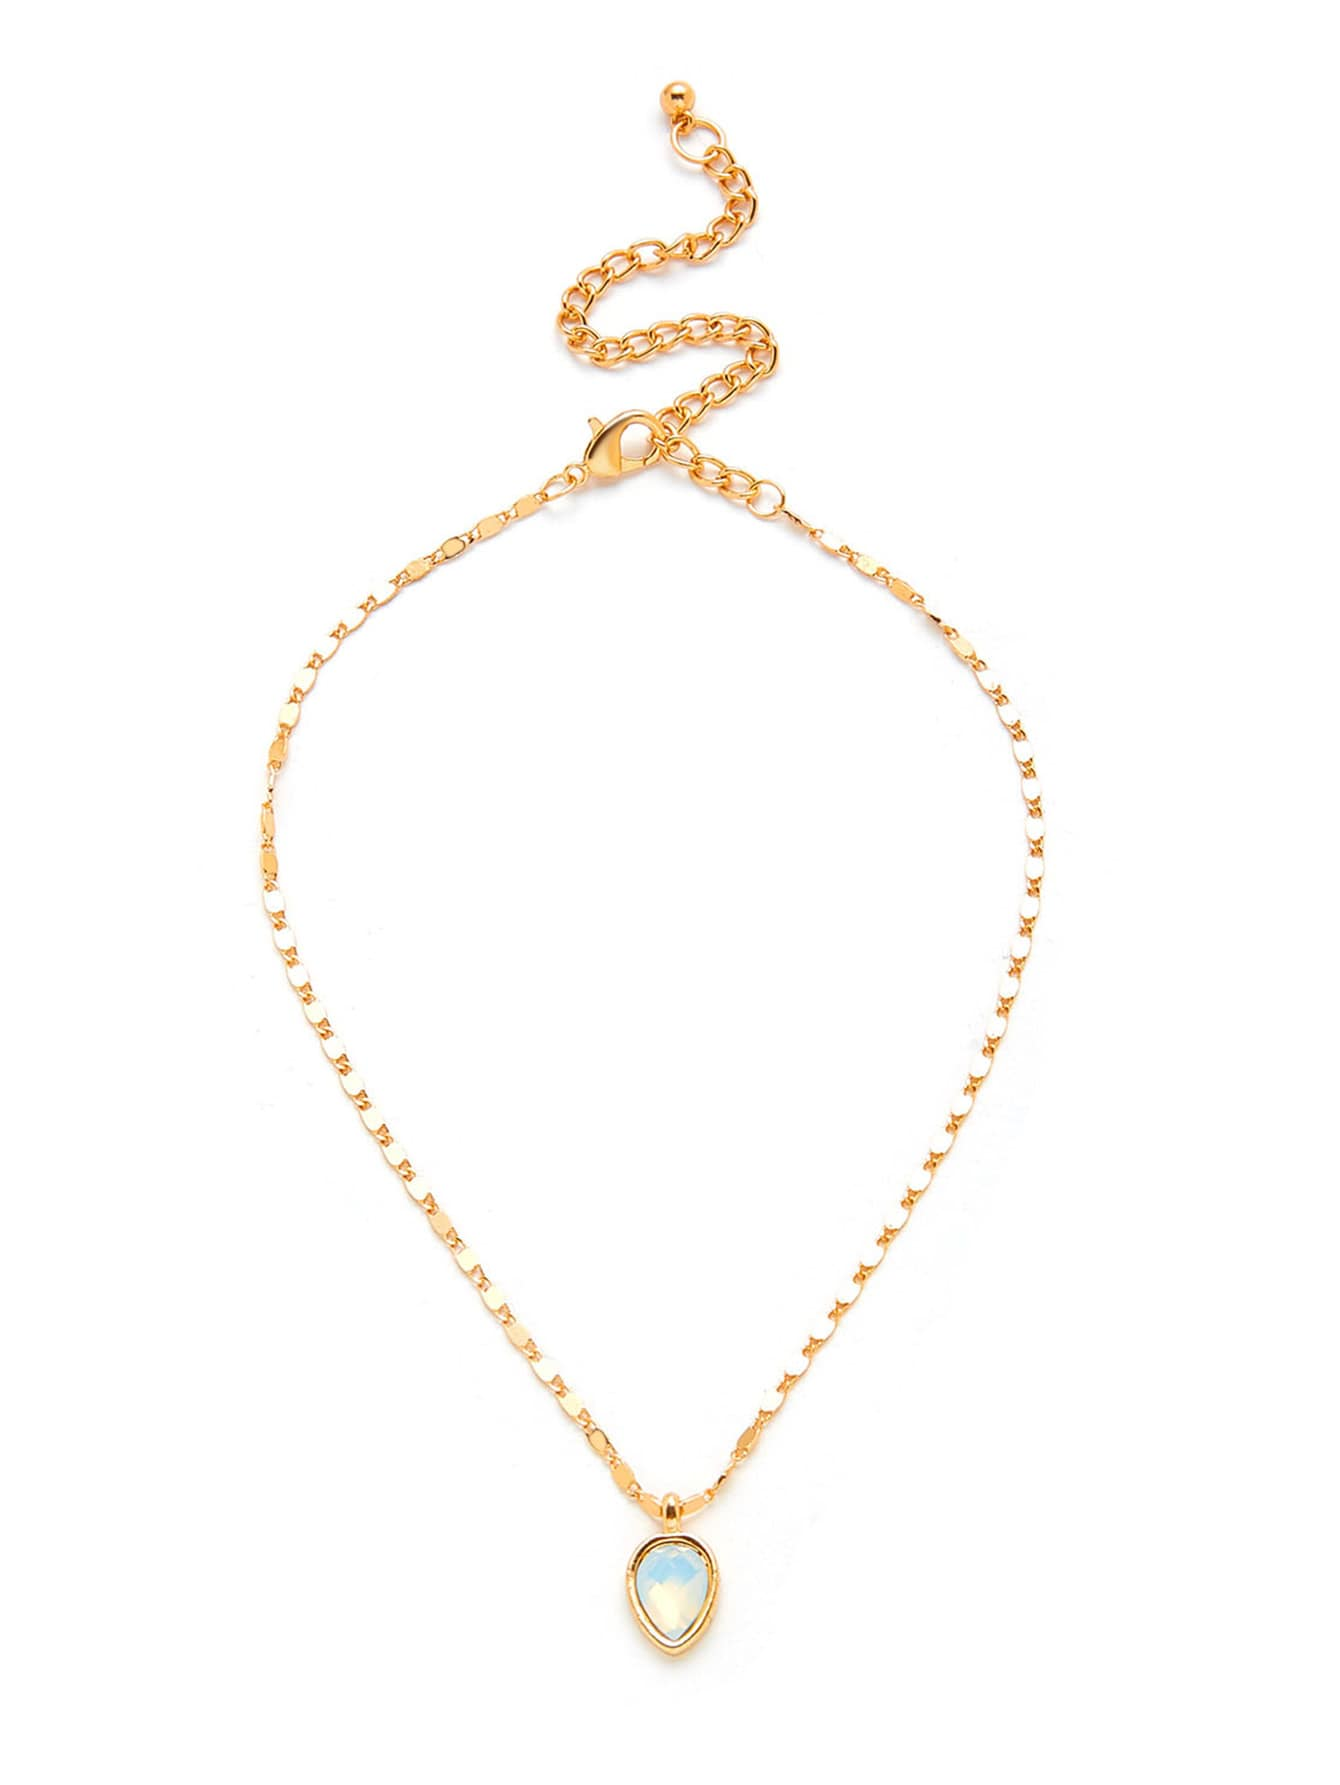 Water Drop Shaped Pendant Chain Necklace